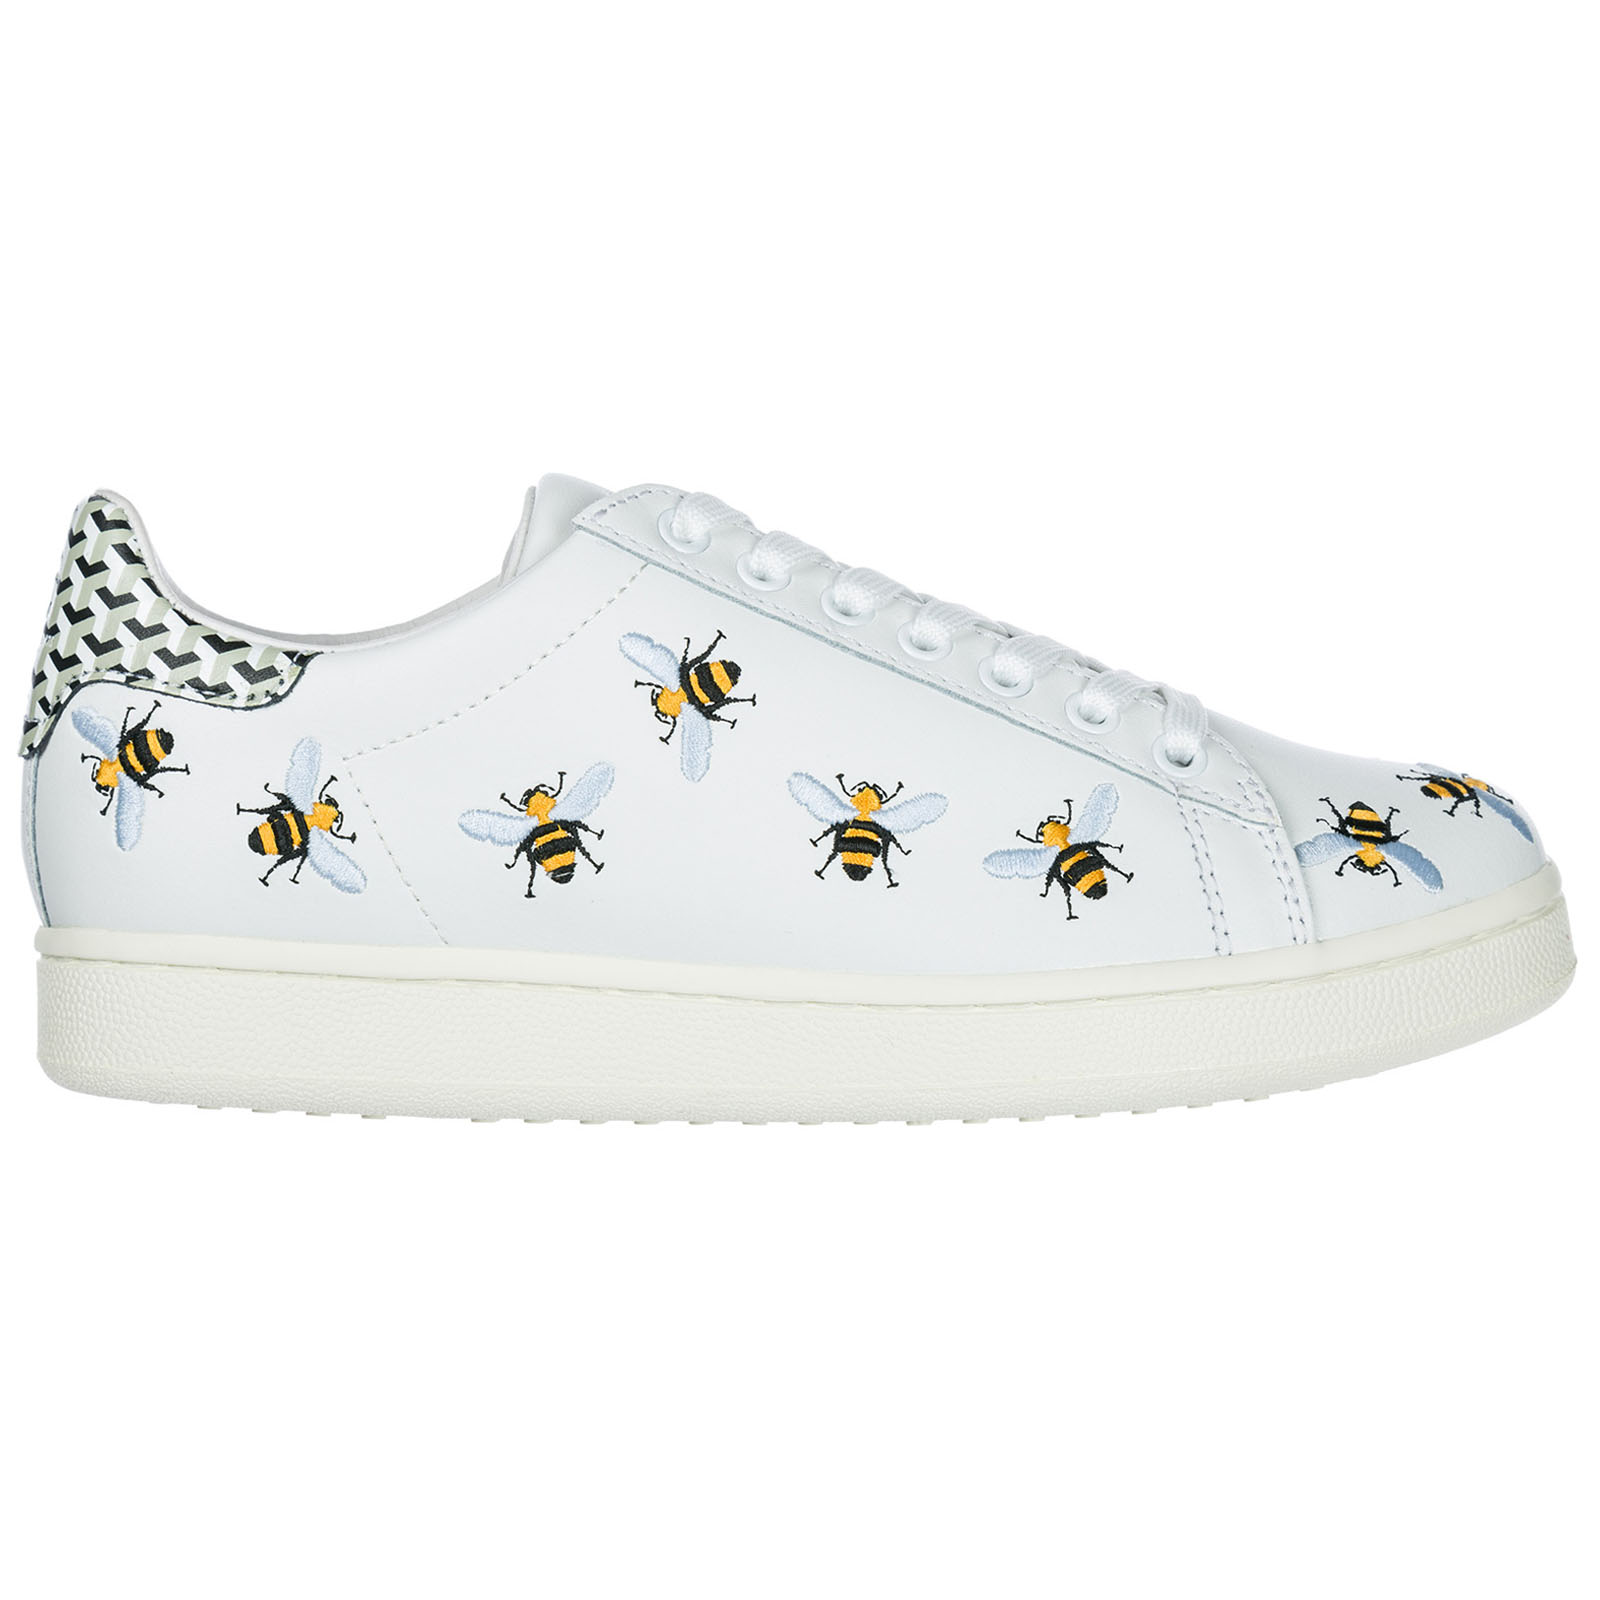 Moa Master of Arts Women s shoes leather trainers sneakers tennis bee 4d3e6cadbbd